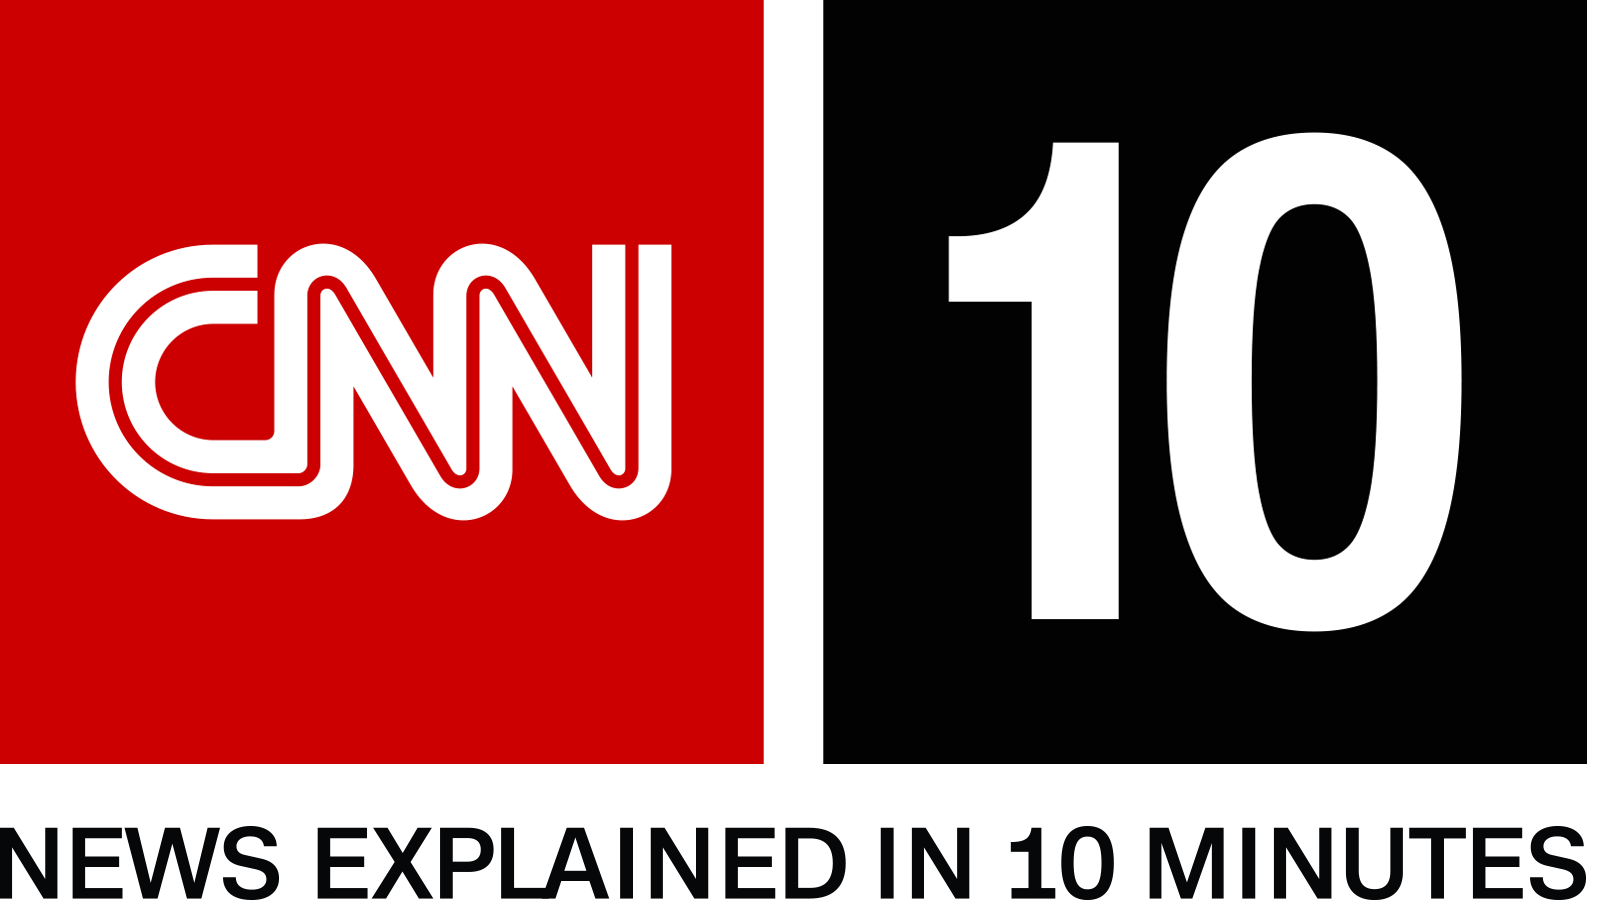 AboutCnn